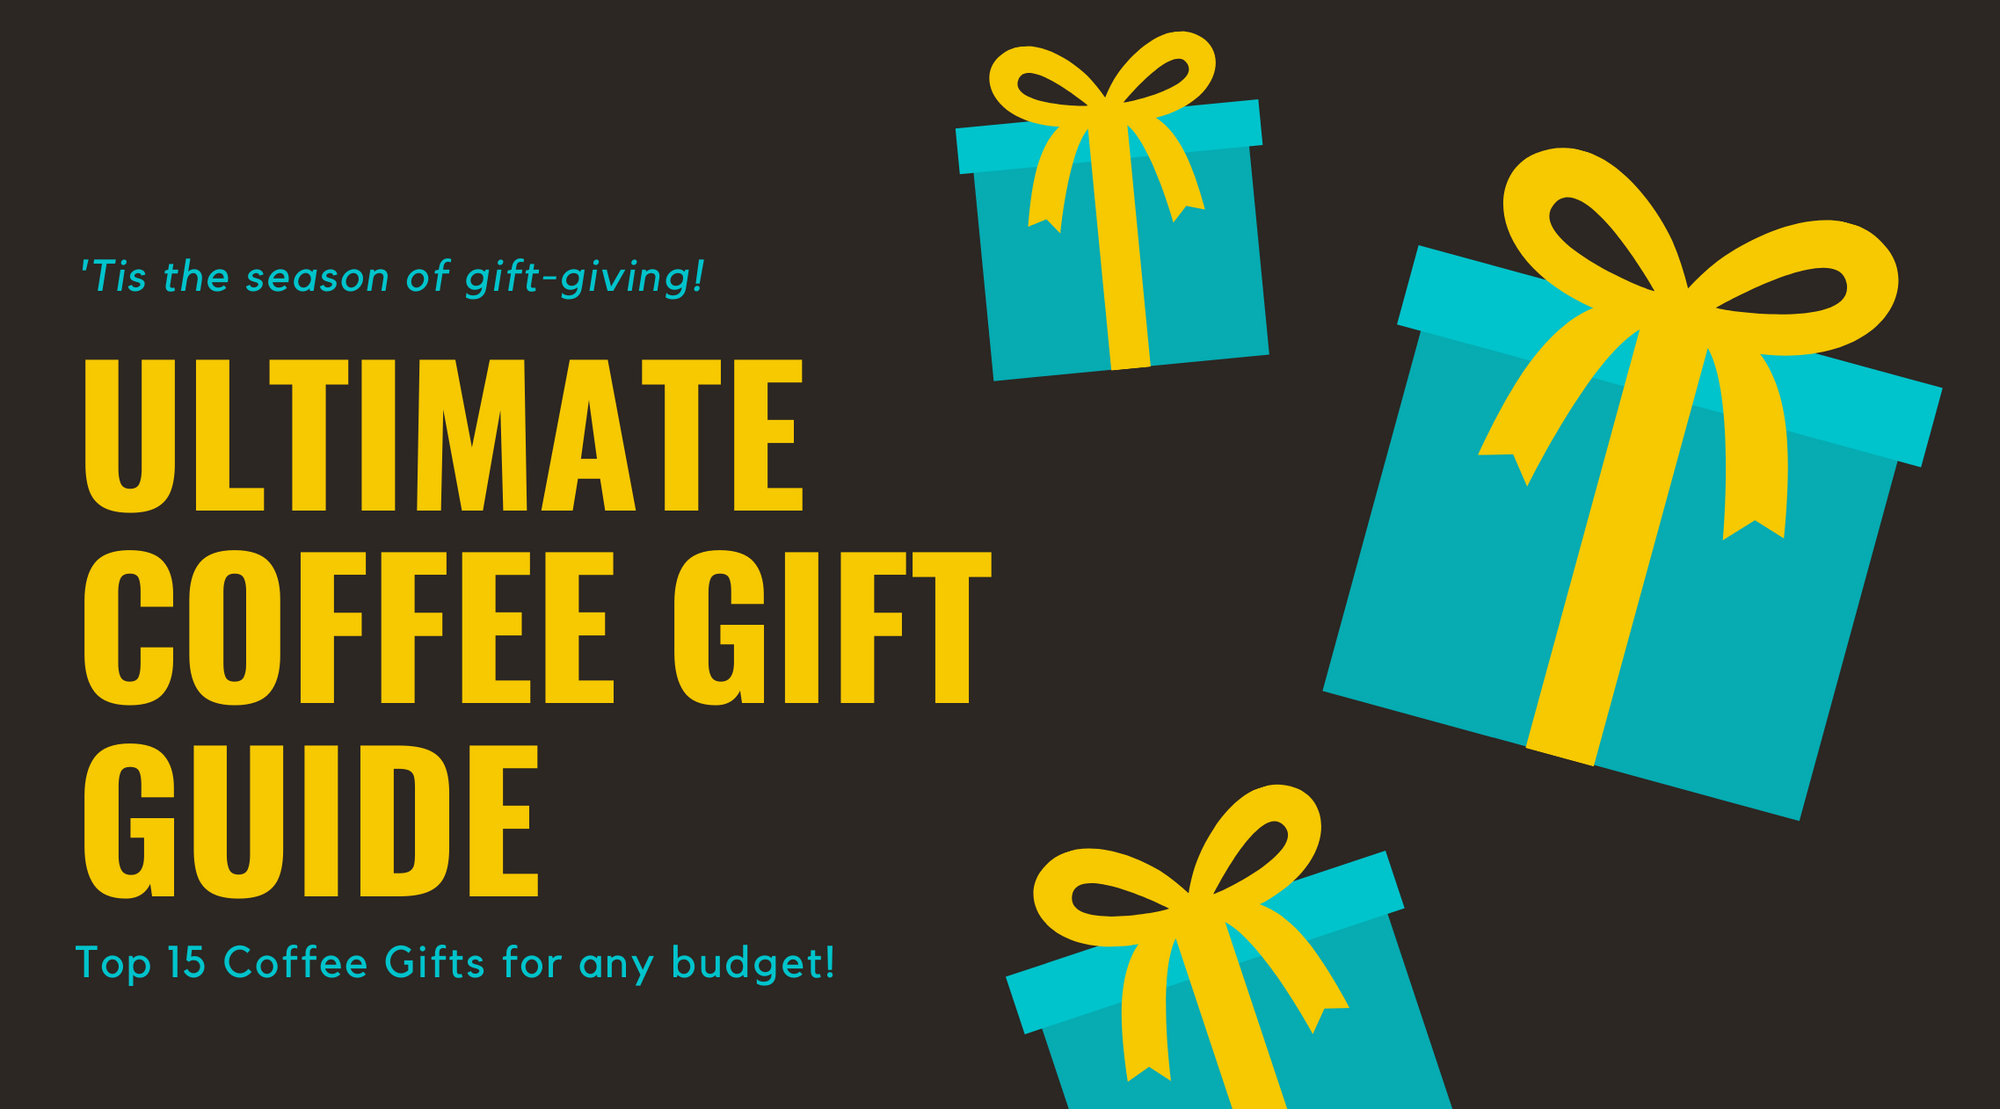 The ultimate gift giving guide for any budget